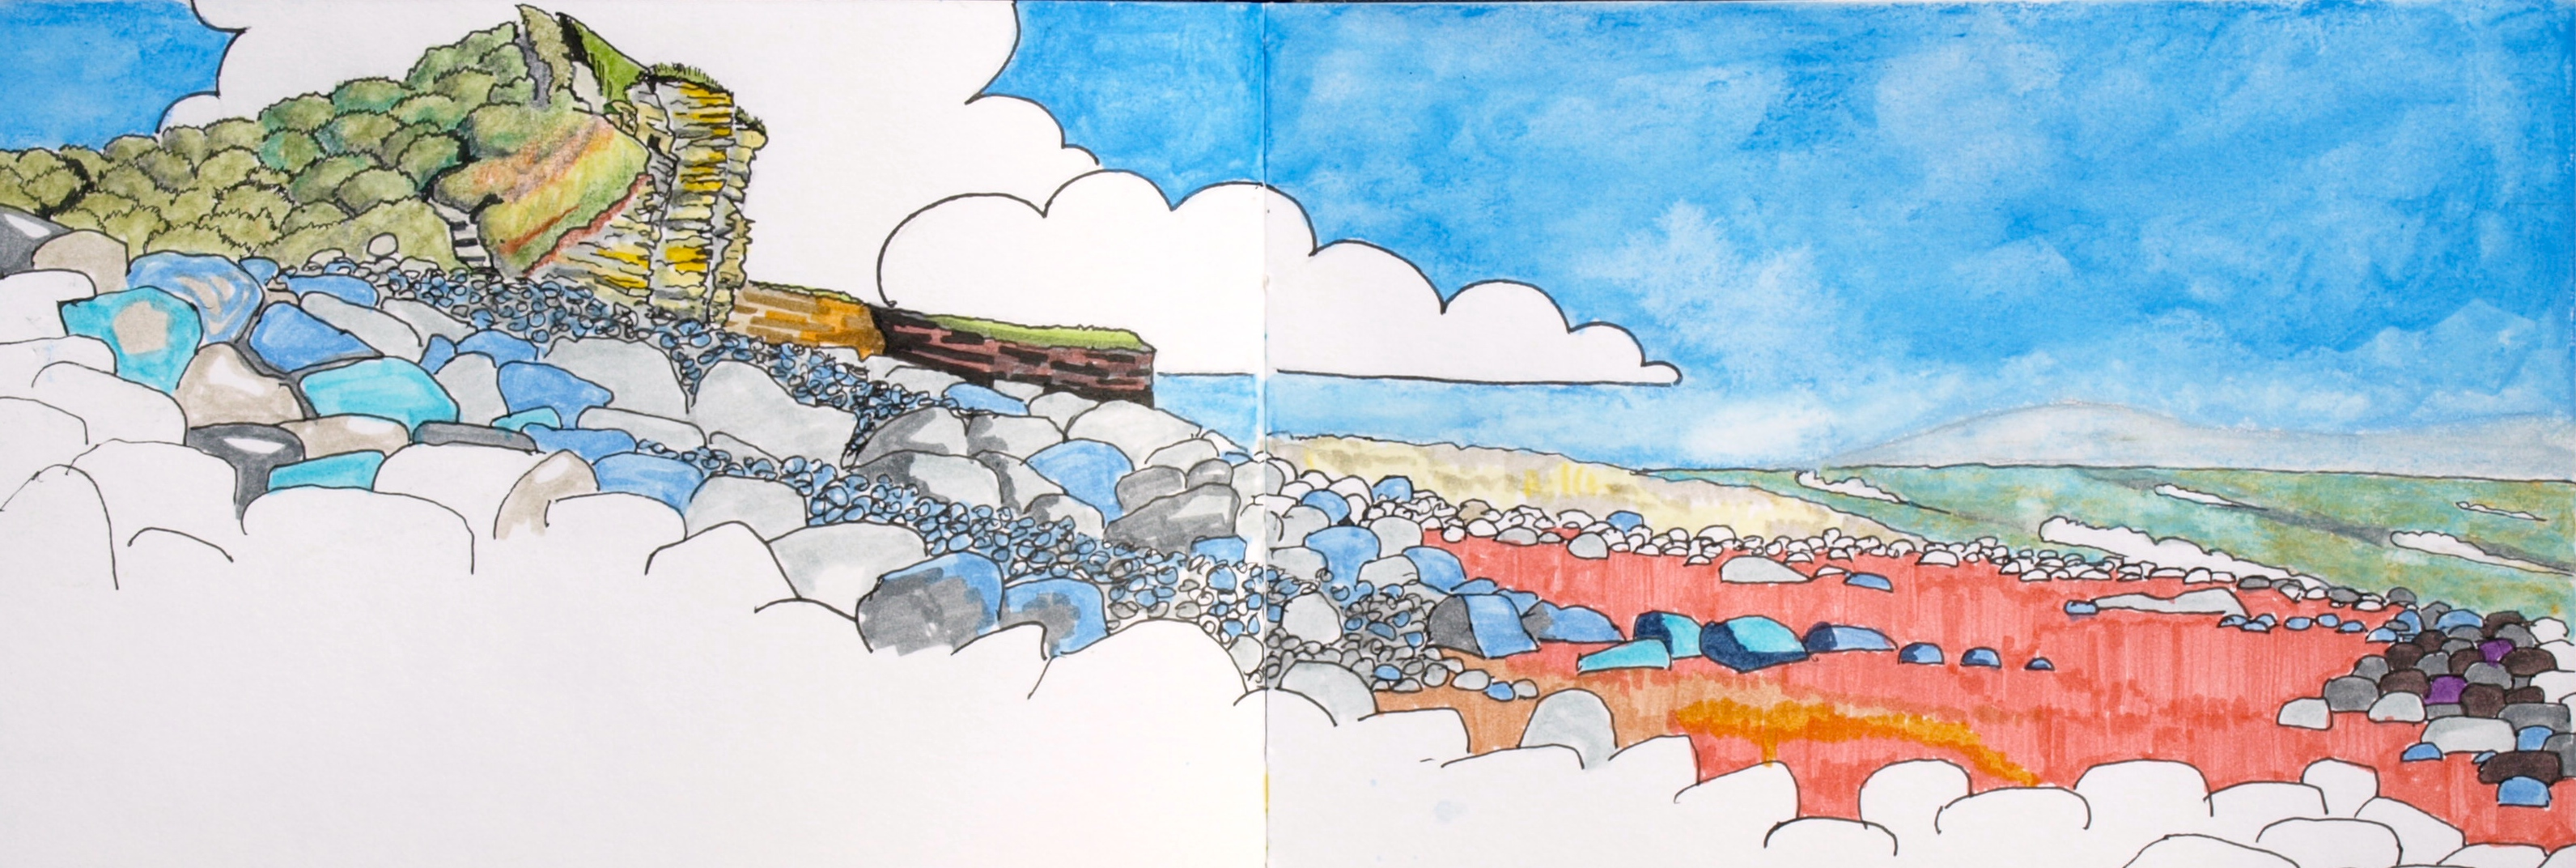 Sketchbook drawing of the Beach and Col-huw Point